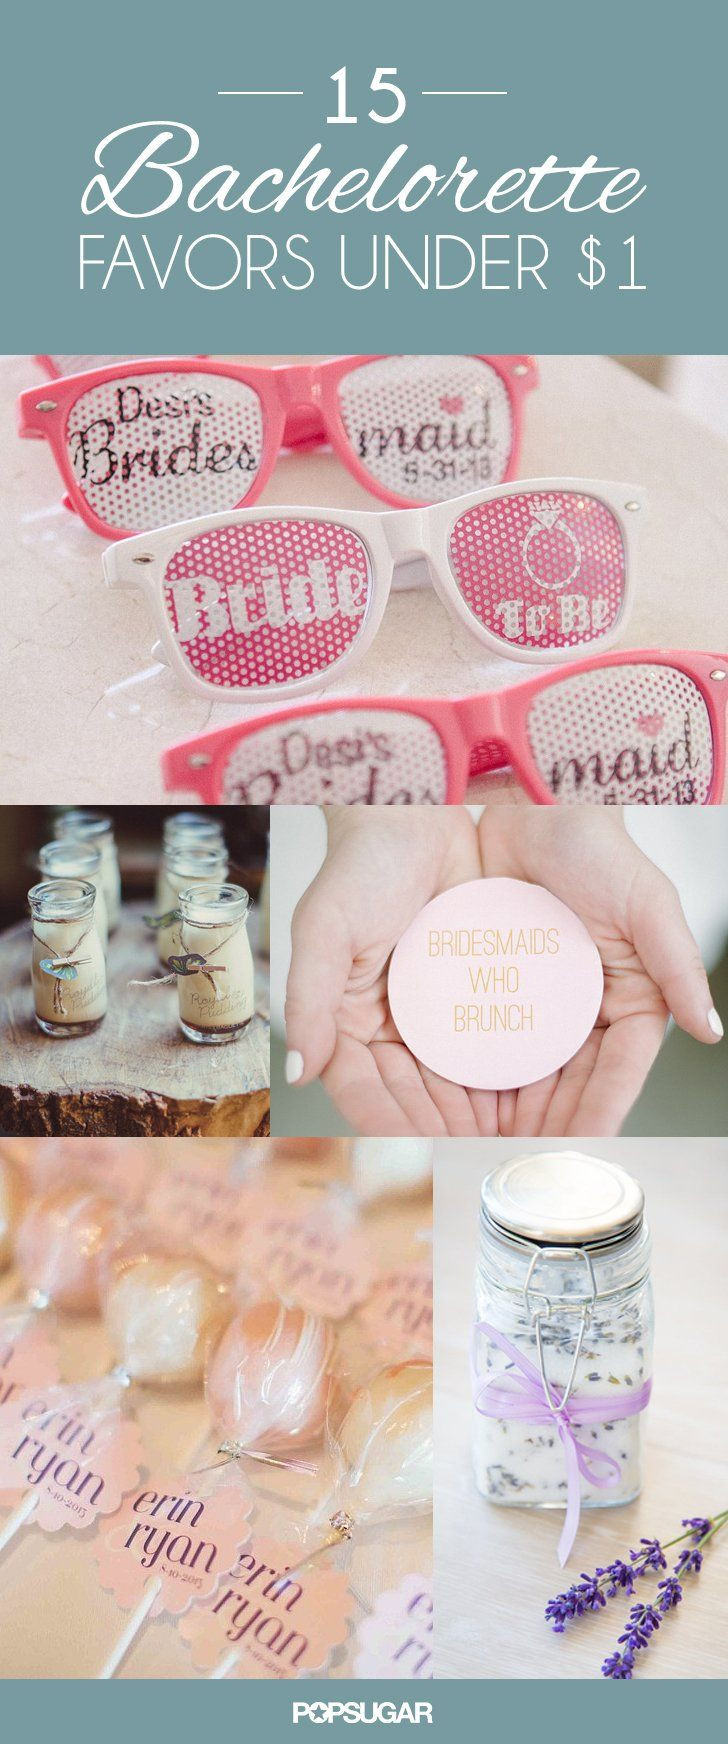 Bachelorette Party Ideas For Under 21 Bride  40 Bachelorette Favors That Take the Party to a Whole New